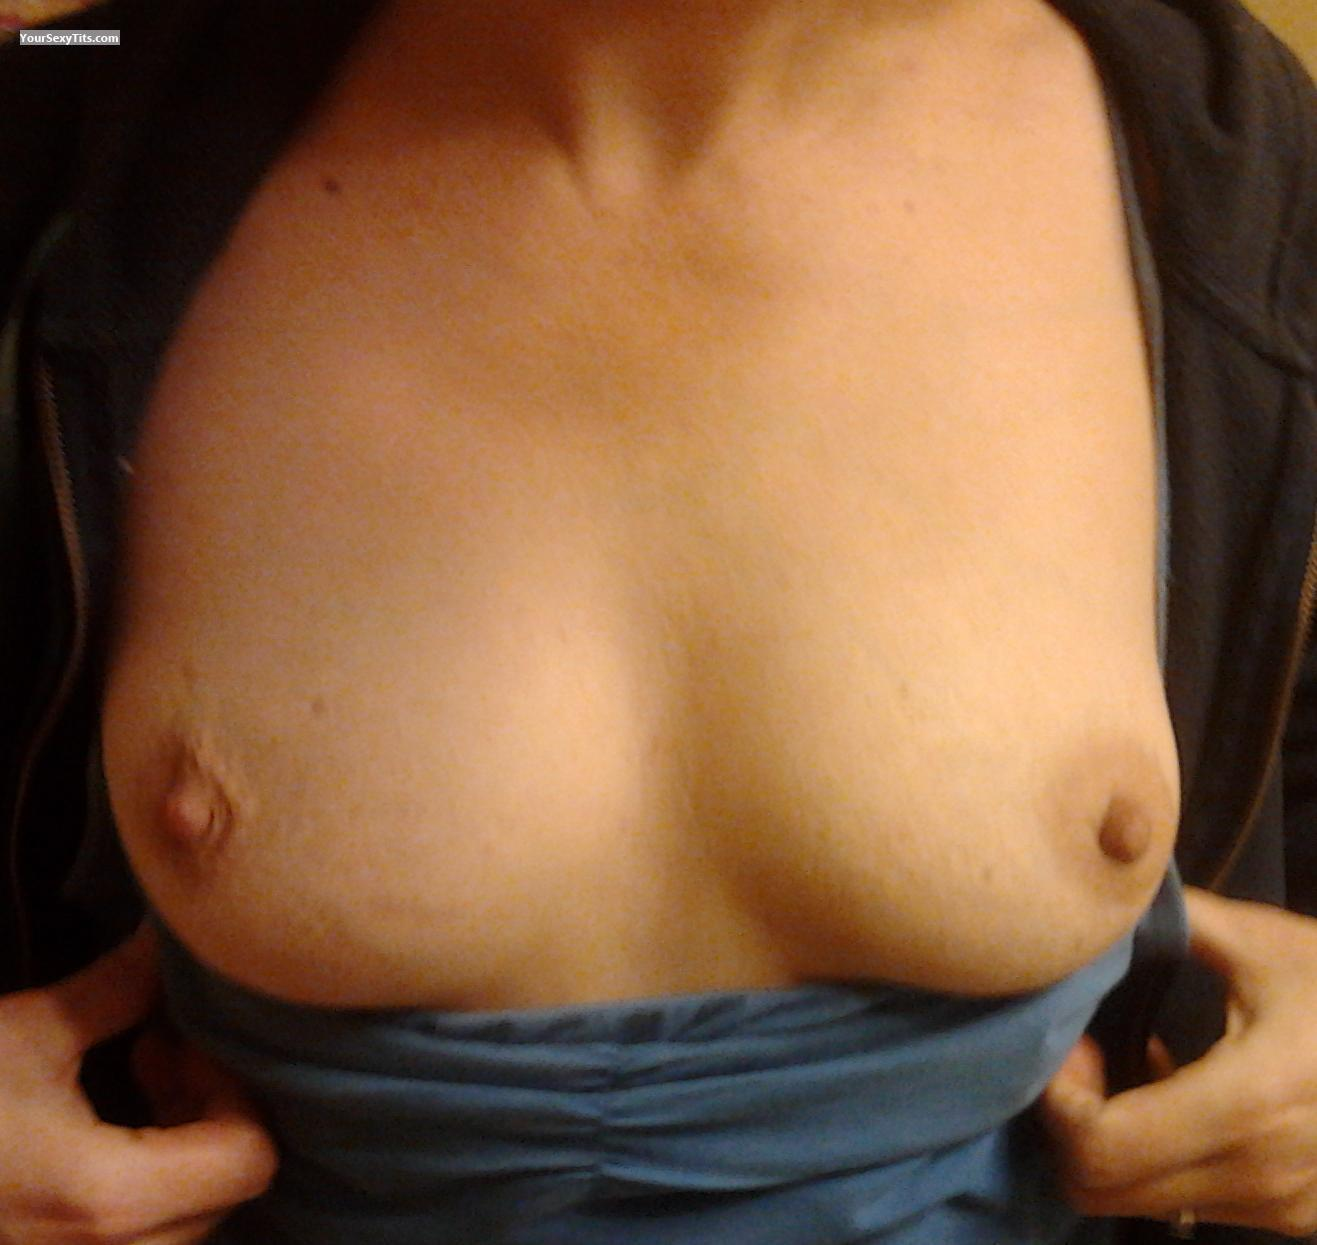 Small Tits Wendy- 2nd Contribution